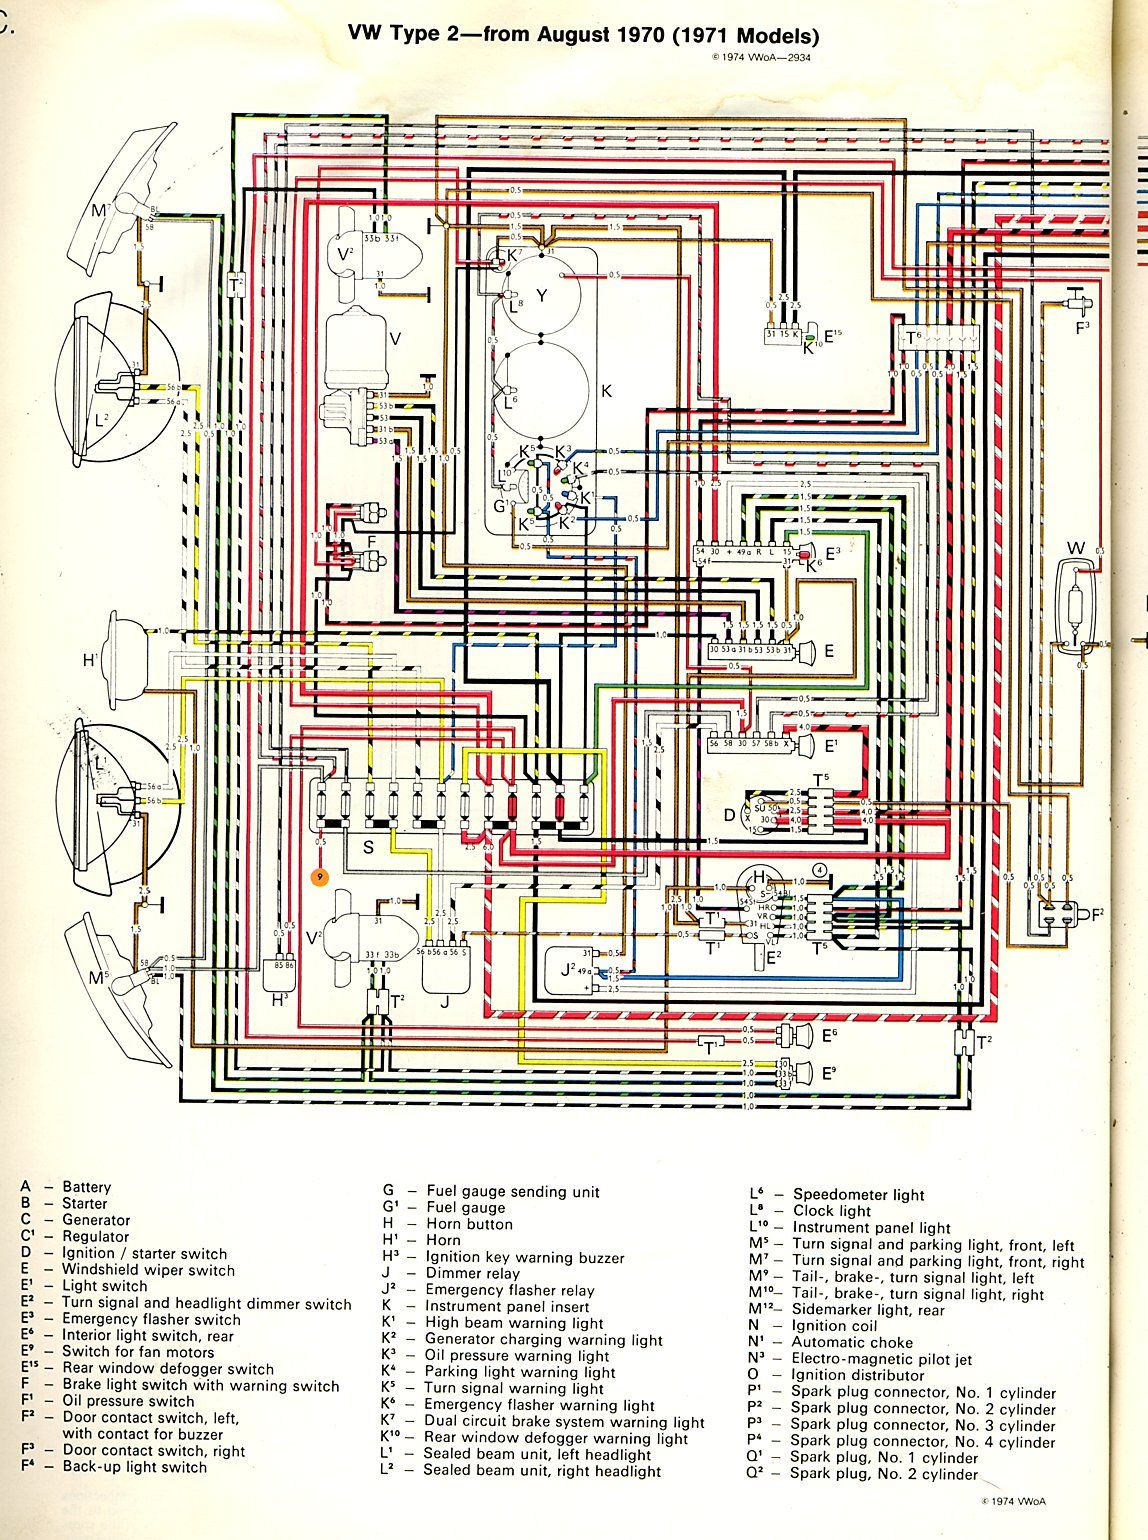 1968 Vw Fuse Box Best Wiring Library 73 Charger Diagram 1971 Bus Electrical Diagrams 1998 Beetle Location